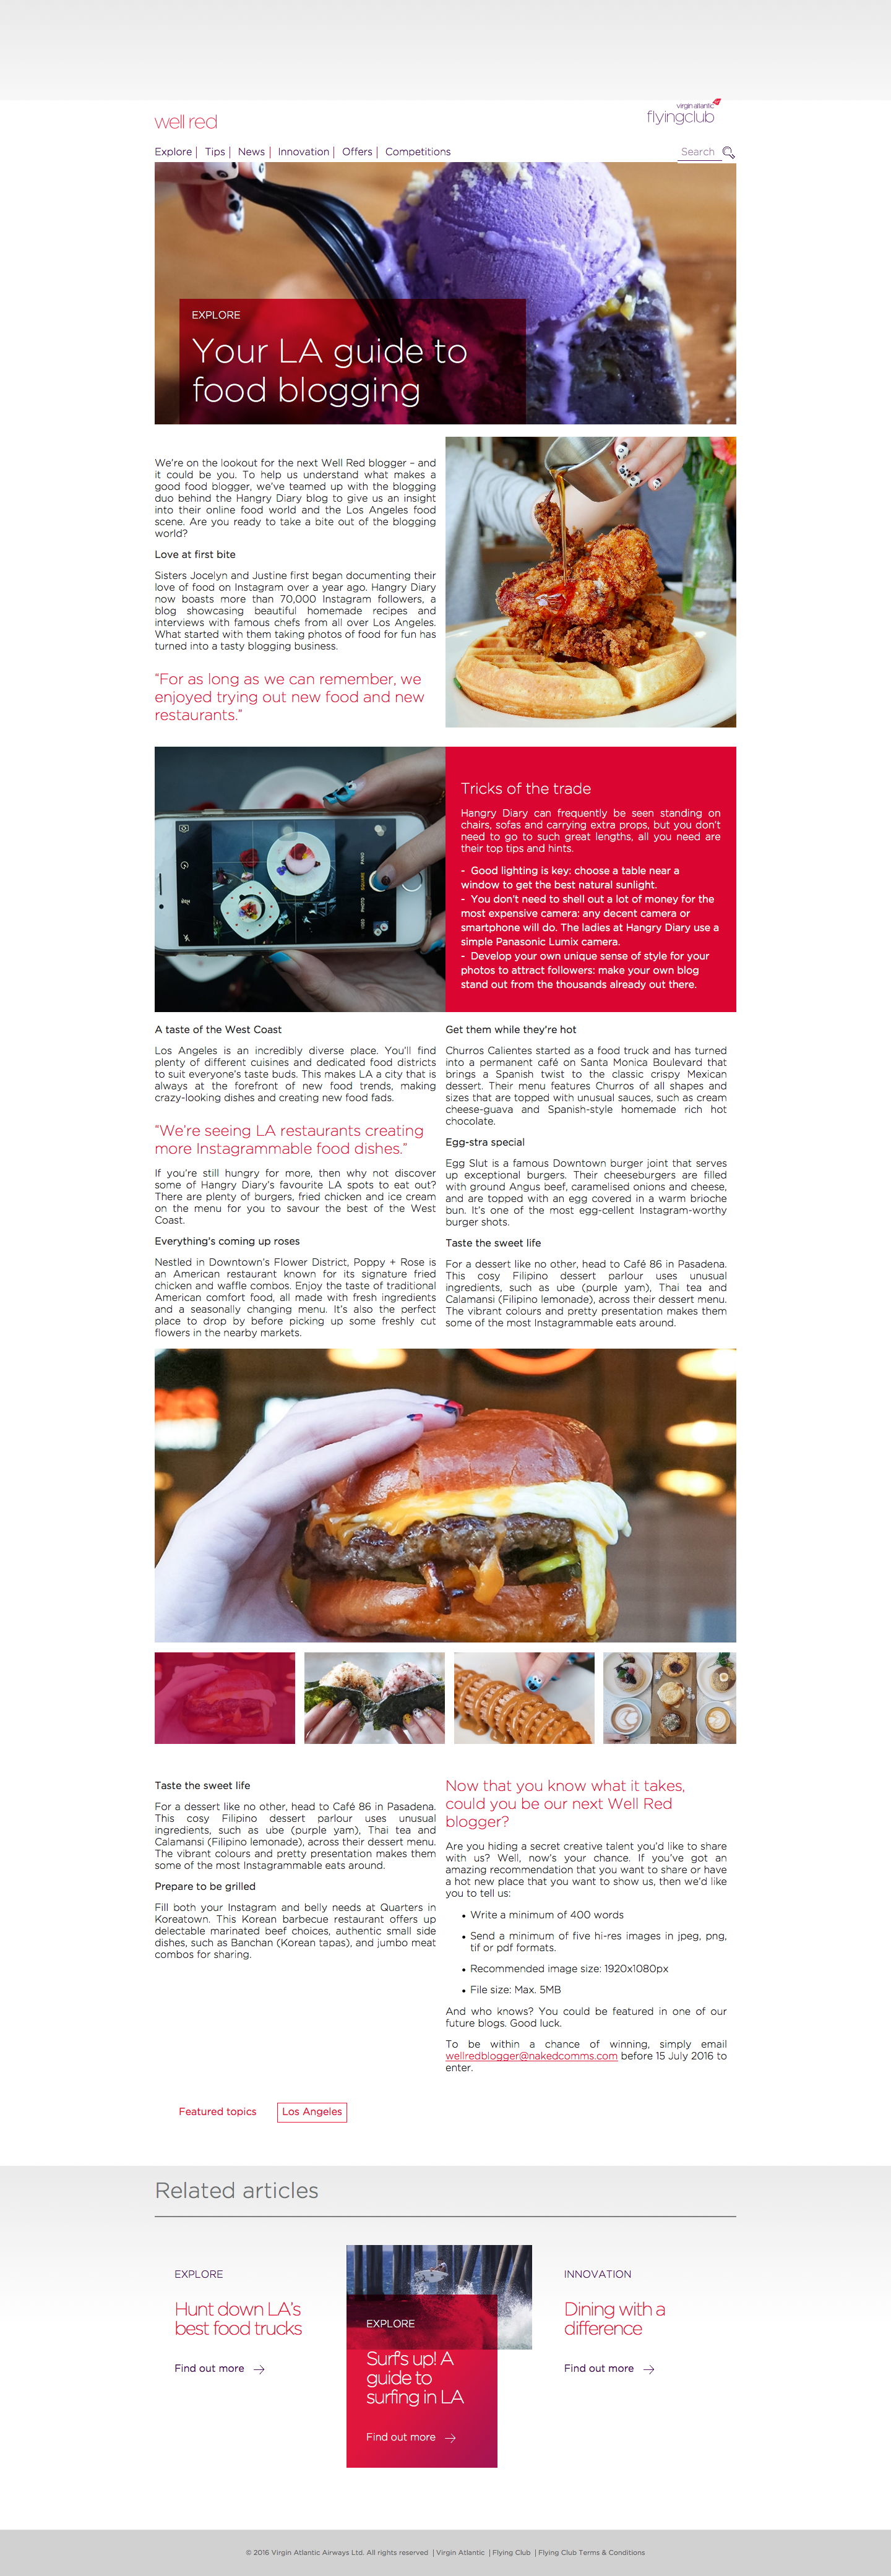 Your_LA_guide_to_food_blogging_Virgin_Atlantic_-_Well_Red_-_2016-06-09_17.53.02 (1).png